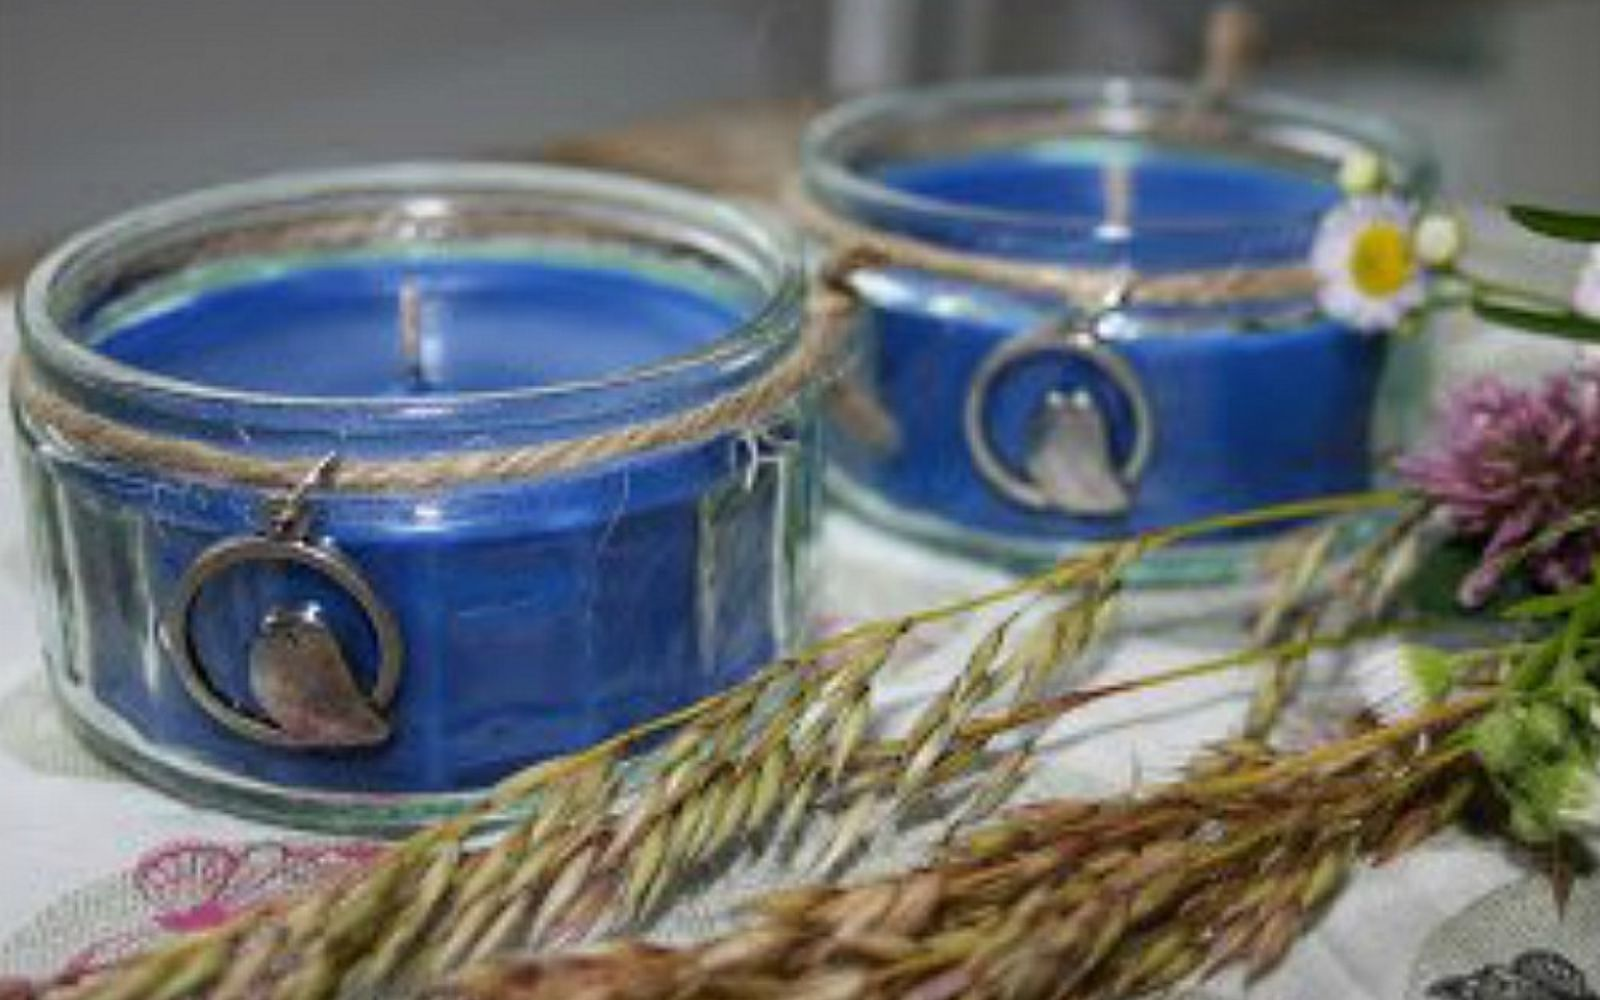 s 15 gorgeous homemade candle ideas you re going to want to try, These perfect blue candles